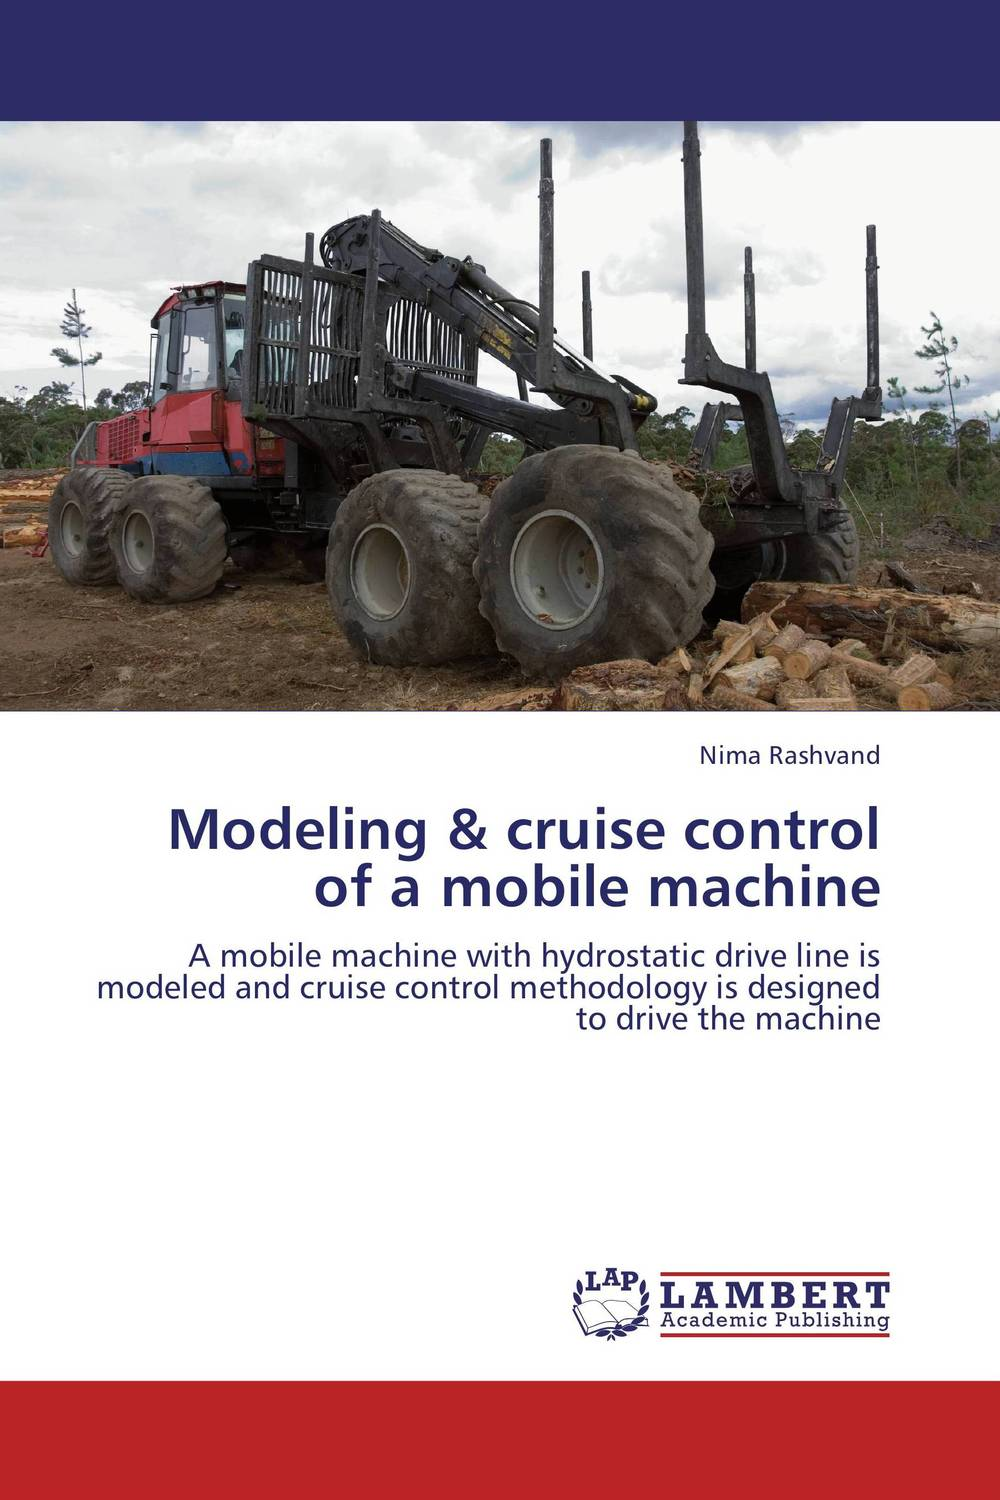 Modeling & cruise control of a mobile machine the modeling of a humane society